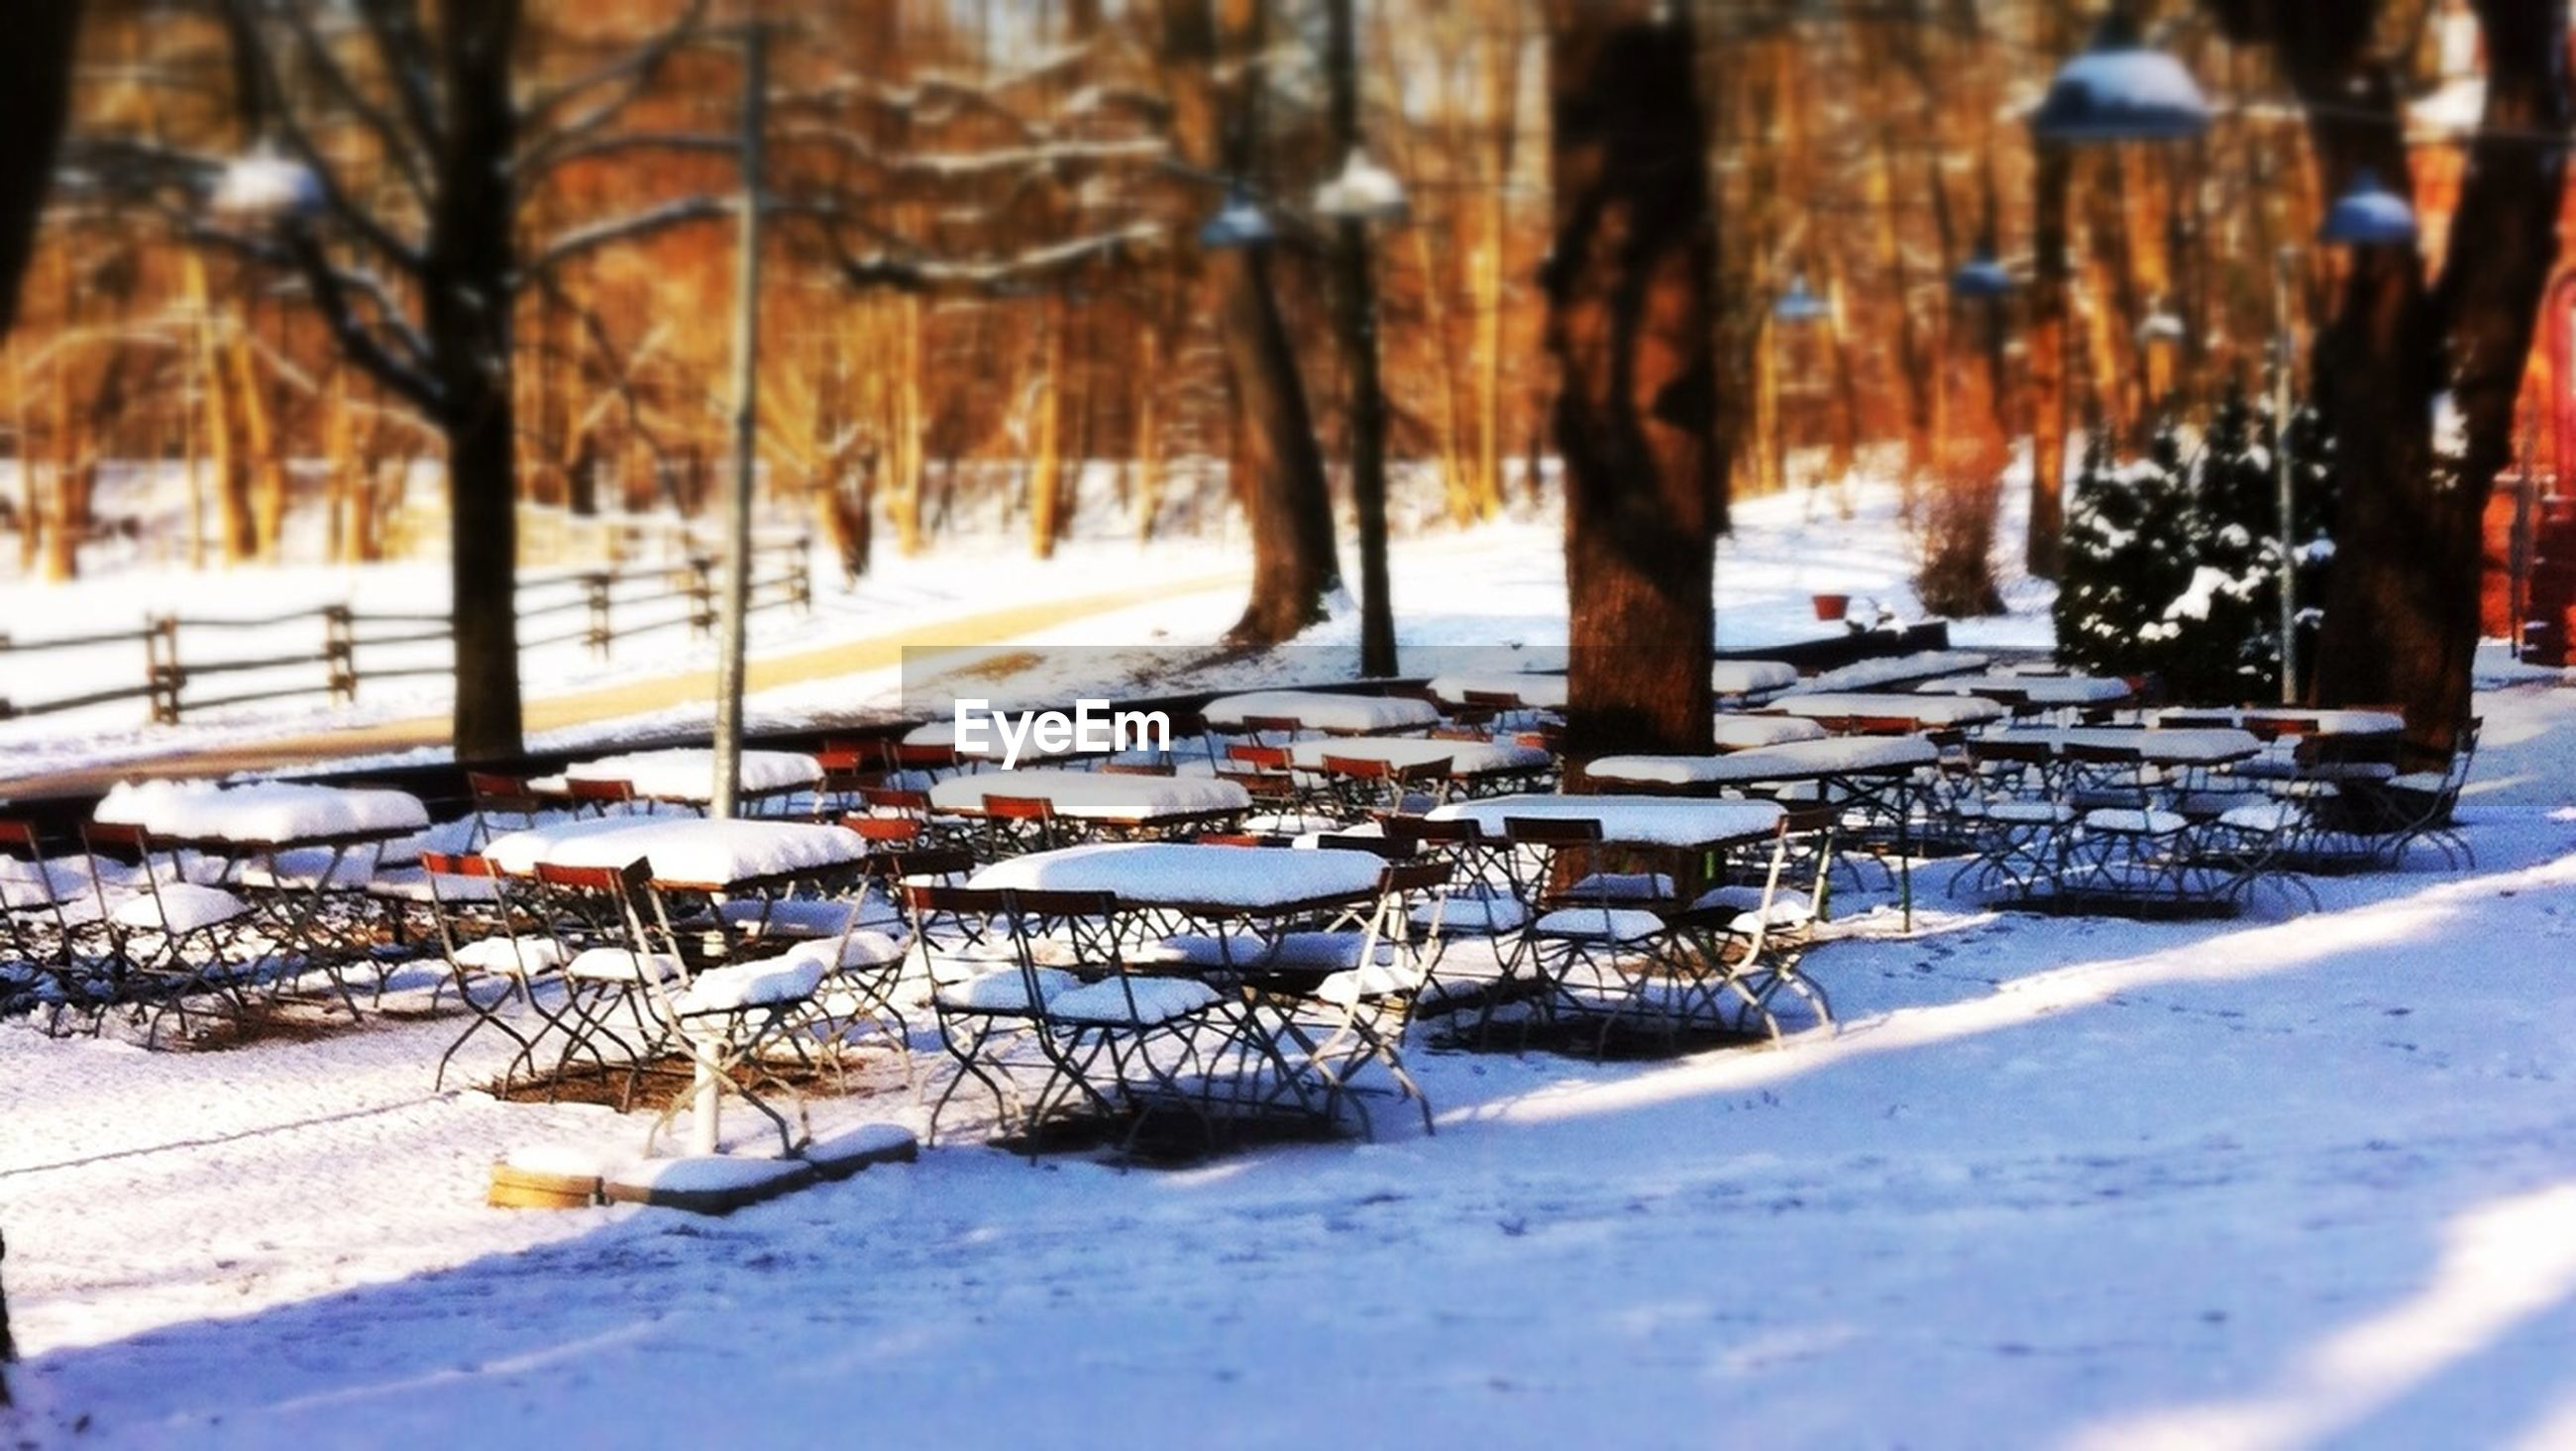 snow, winter, cold temperature, season, weather, covering, tree, frozen, covered, nature, chair, bench, absence, empty, in a row, white color, outdoors, day, tree trunk, tranquility